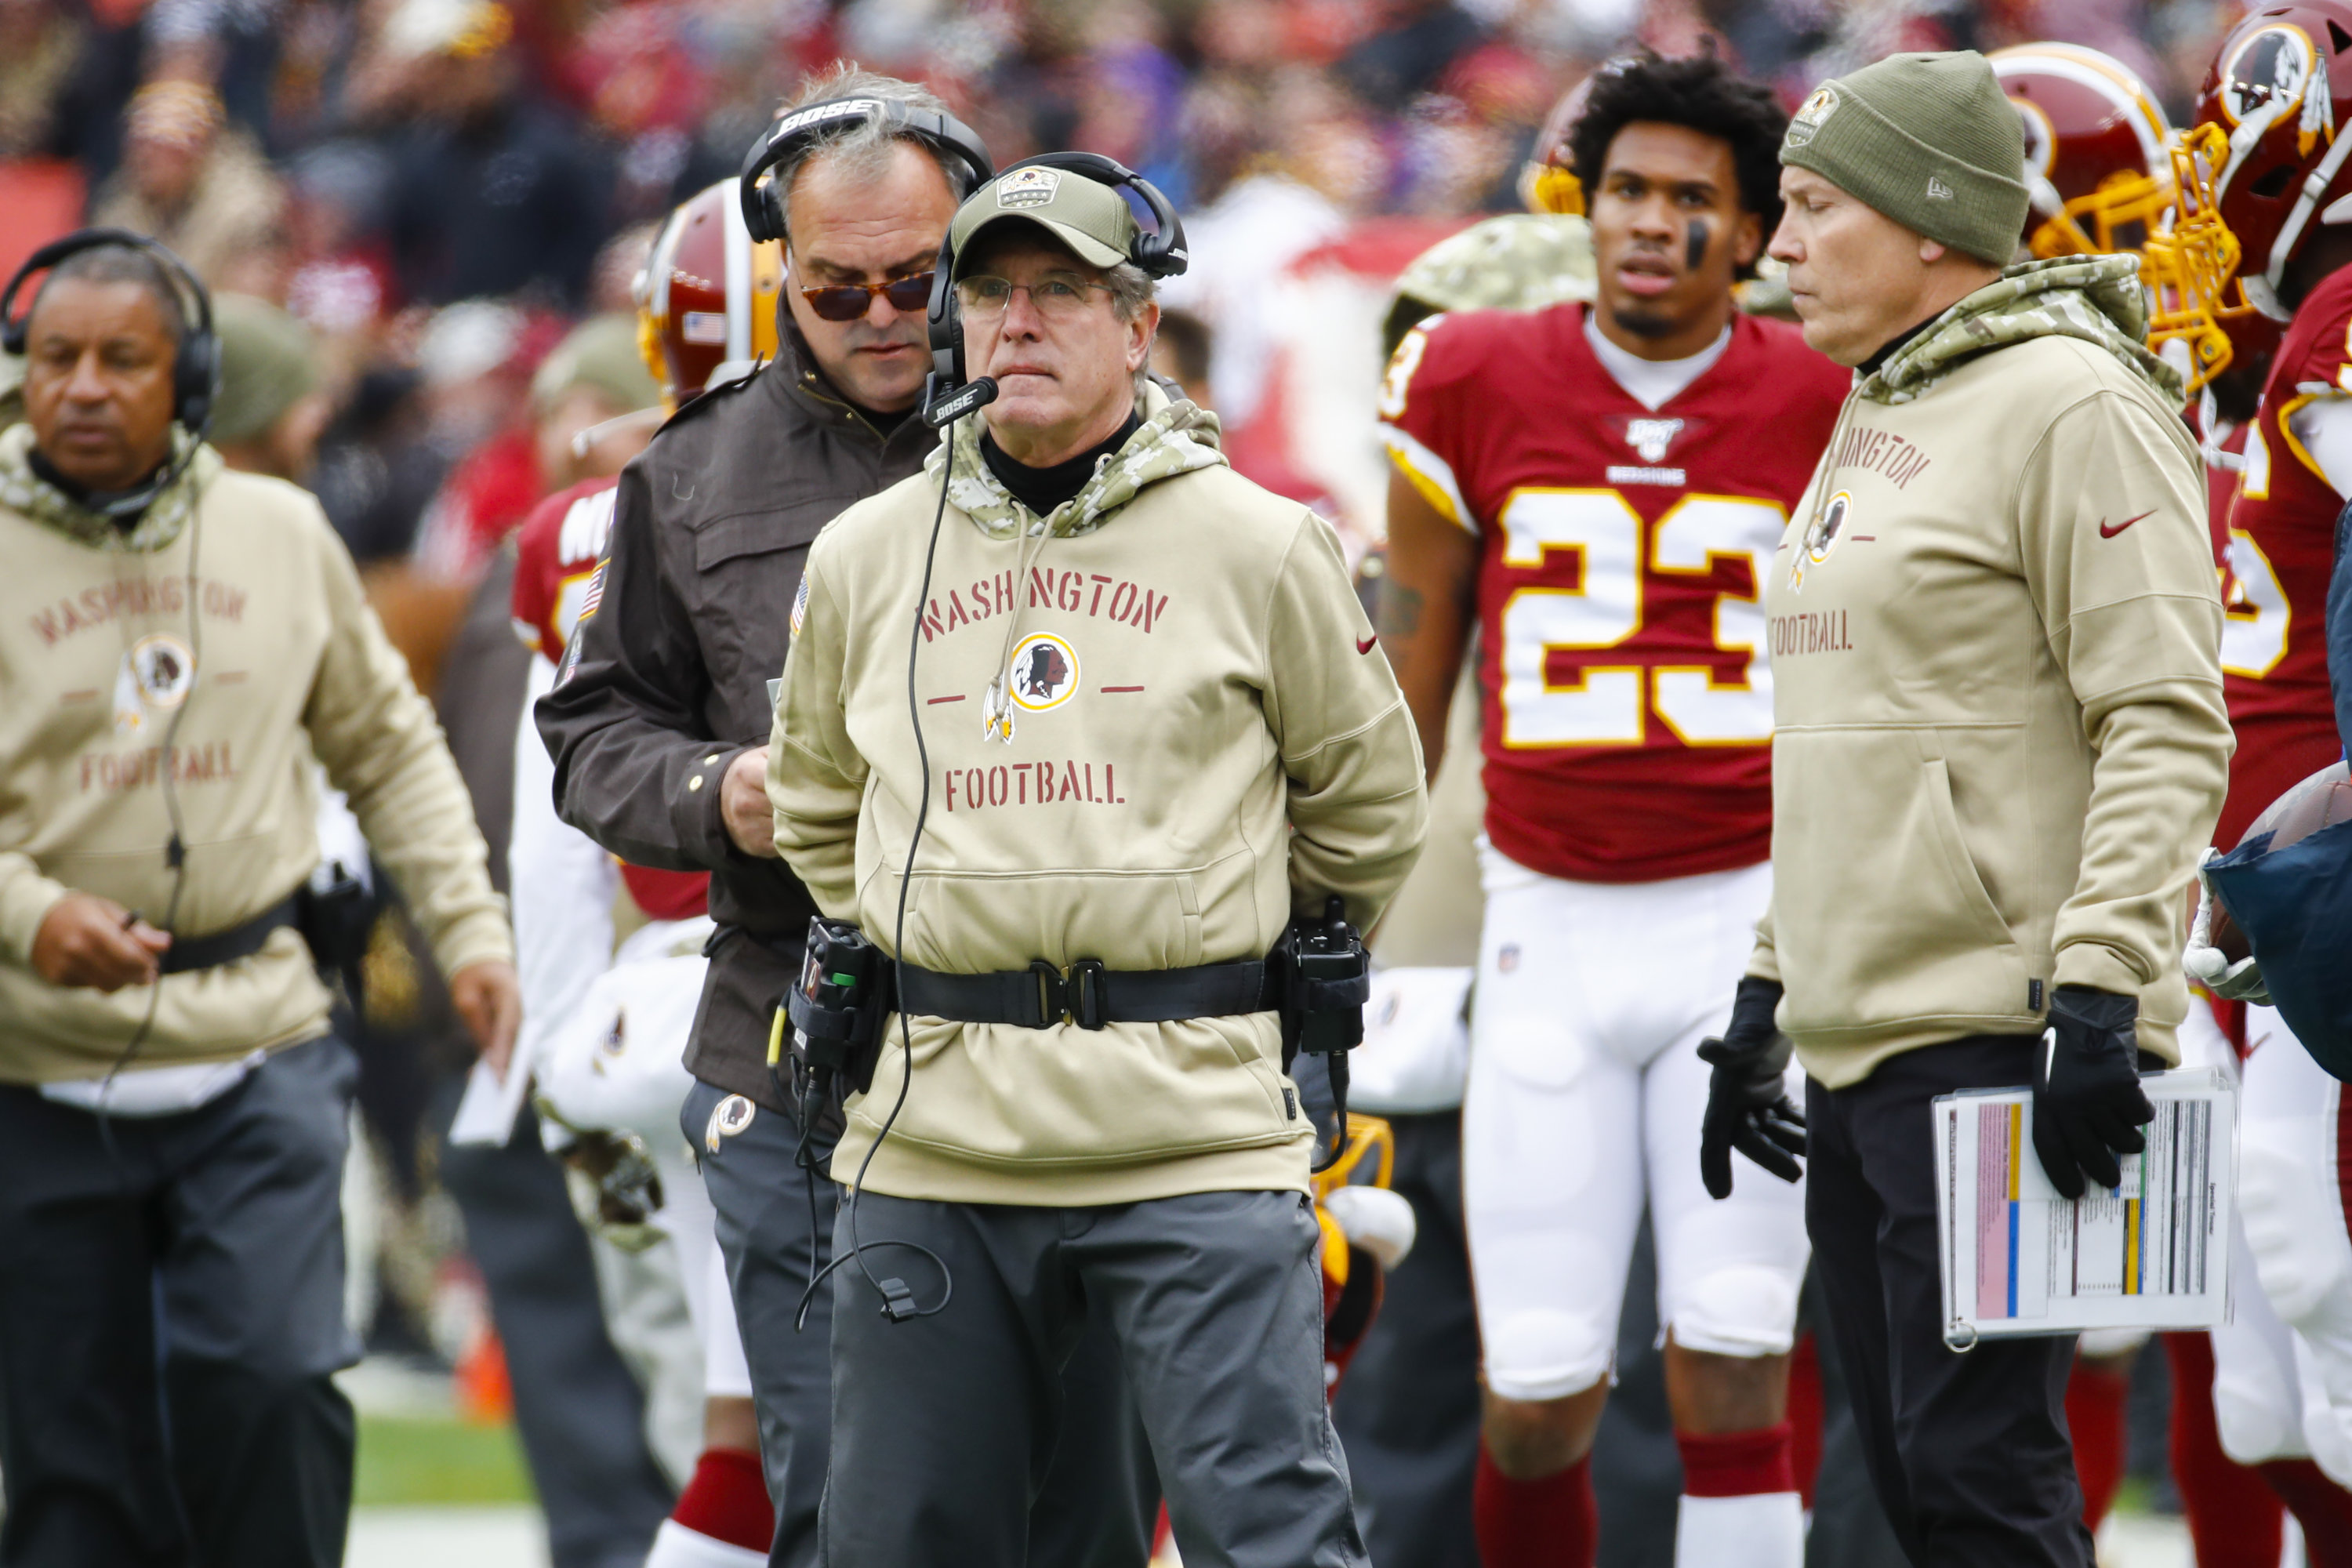 No One Seems to Know Why the Redskins' Name Wasn't on Their Salute to Service Hoodies